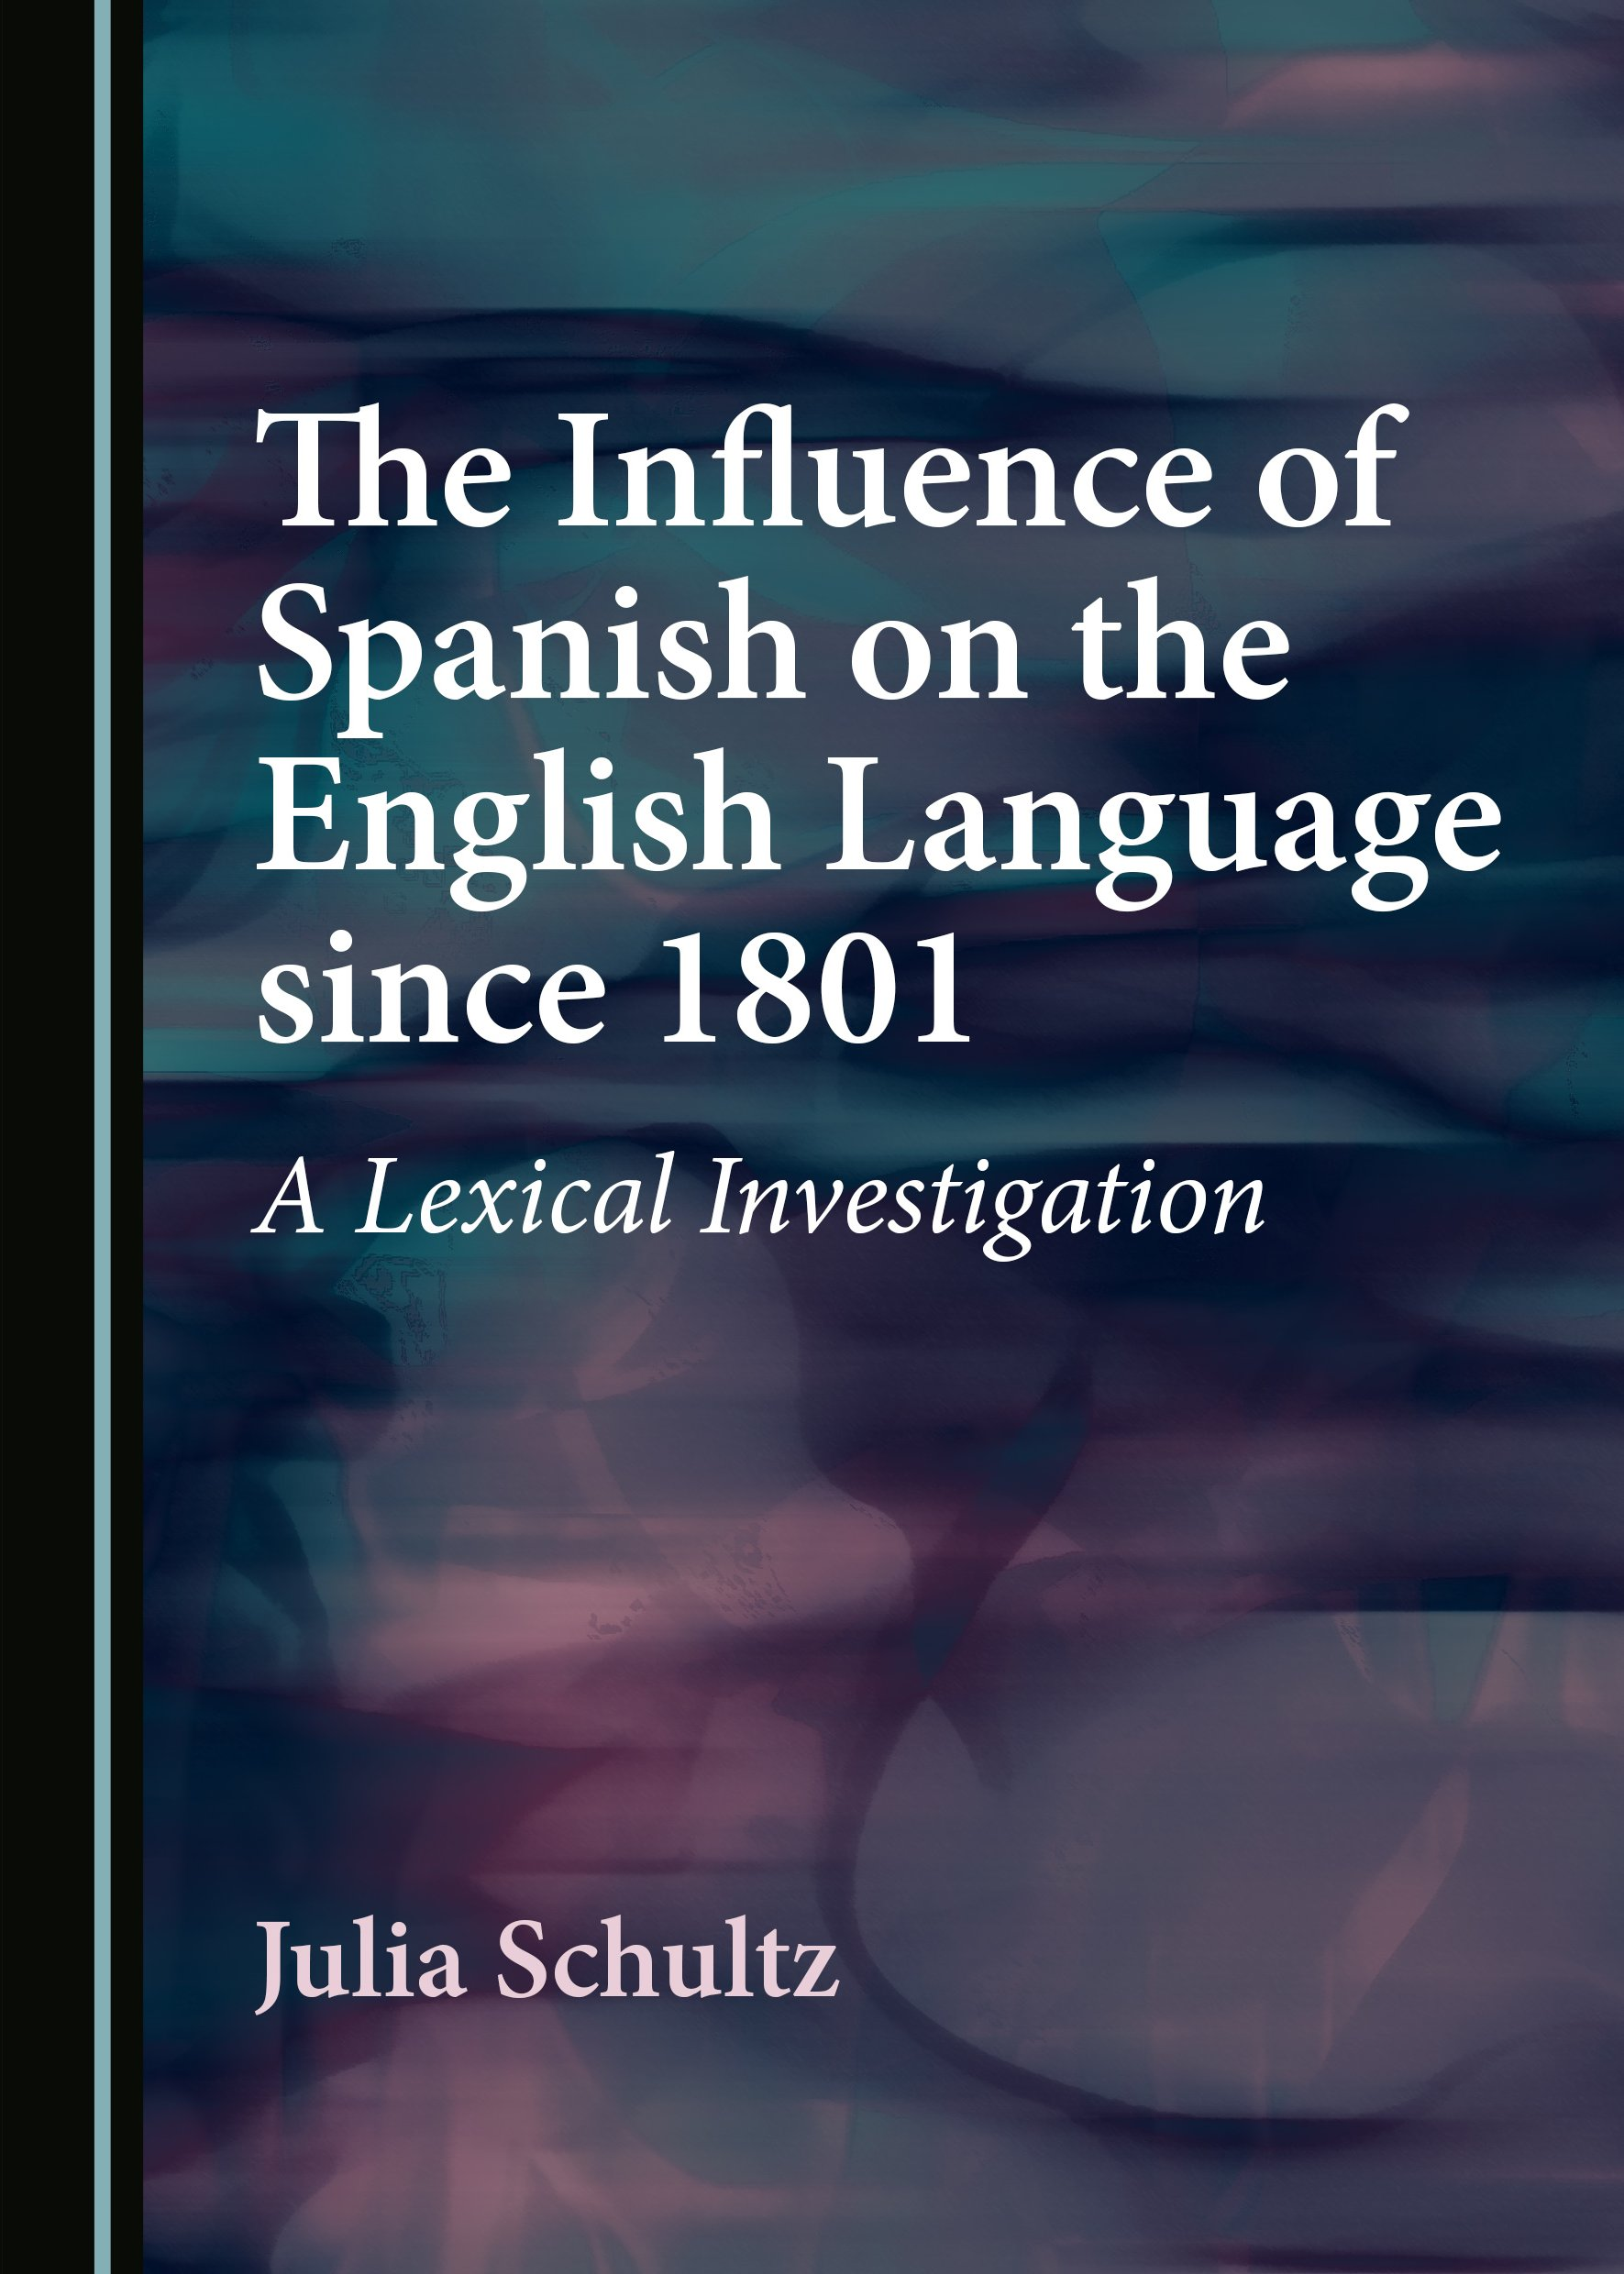 The Influence of Spanish on the English Language since 1801: A Lexical Investigation